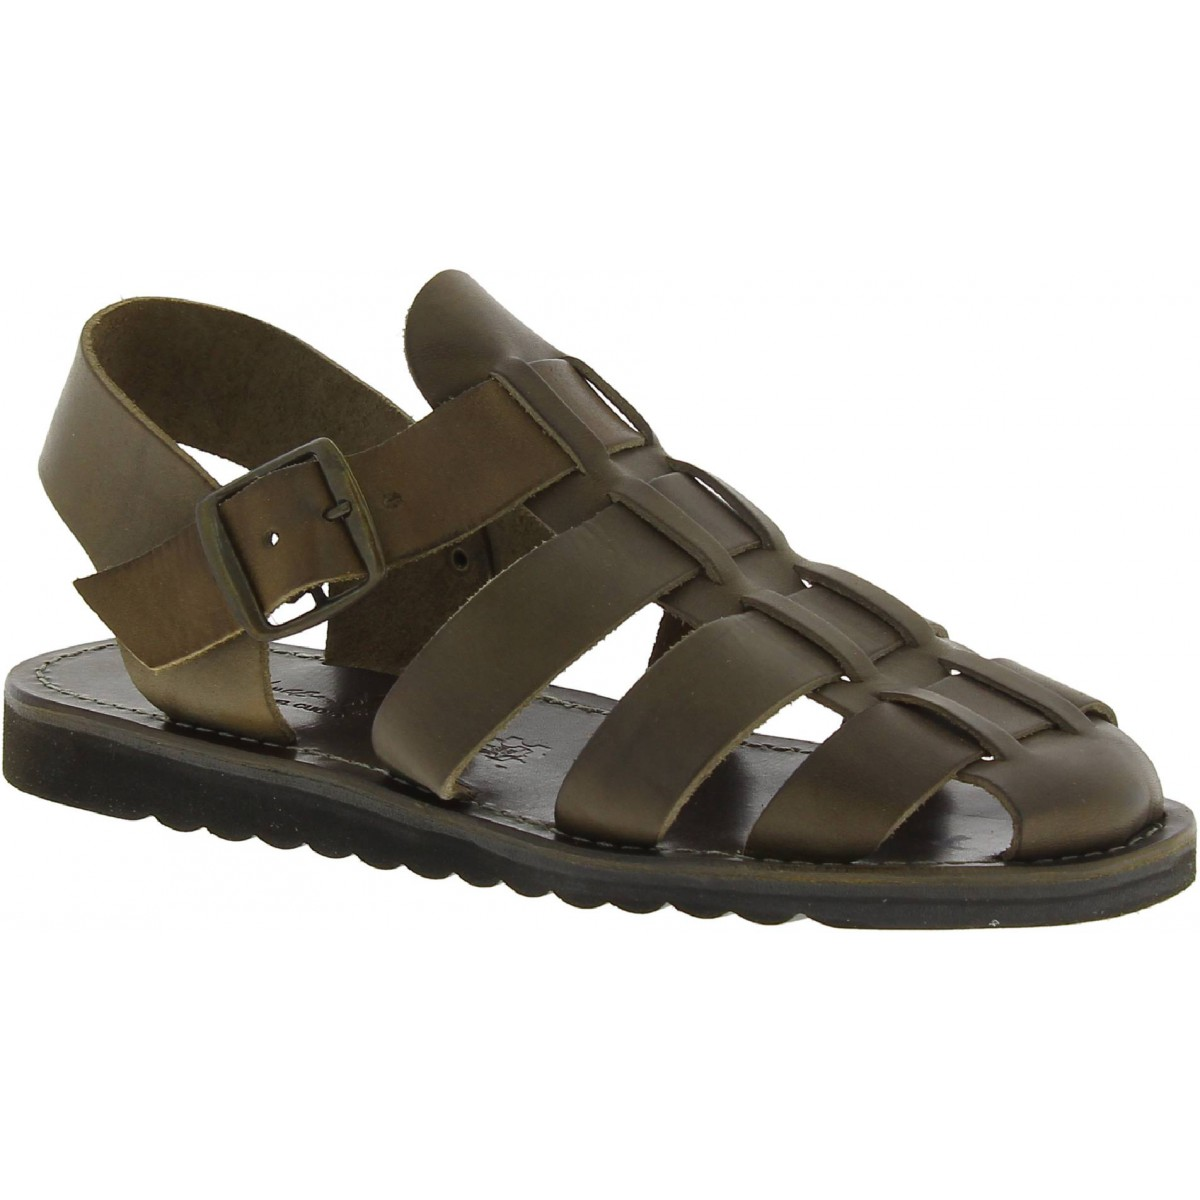 22a9165cb48 Handmade men s sandals in mud color leather thick rubber sole. Loading zoom